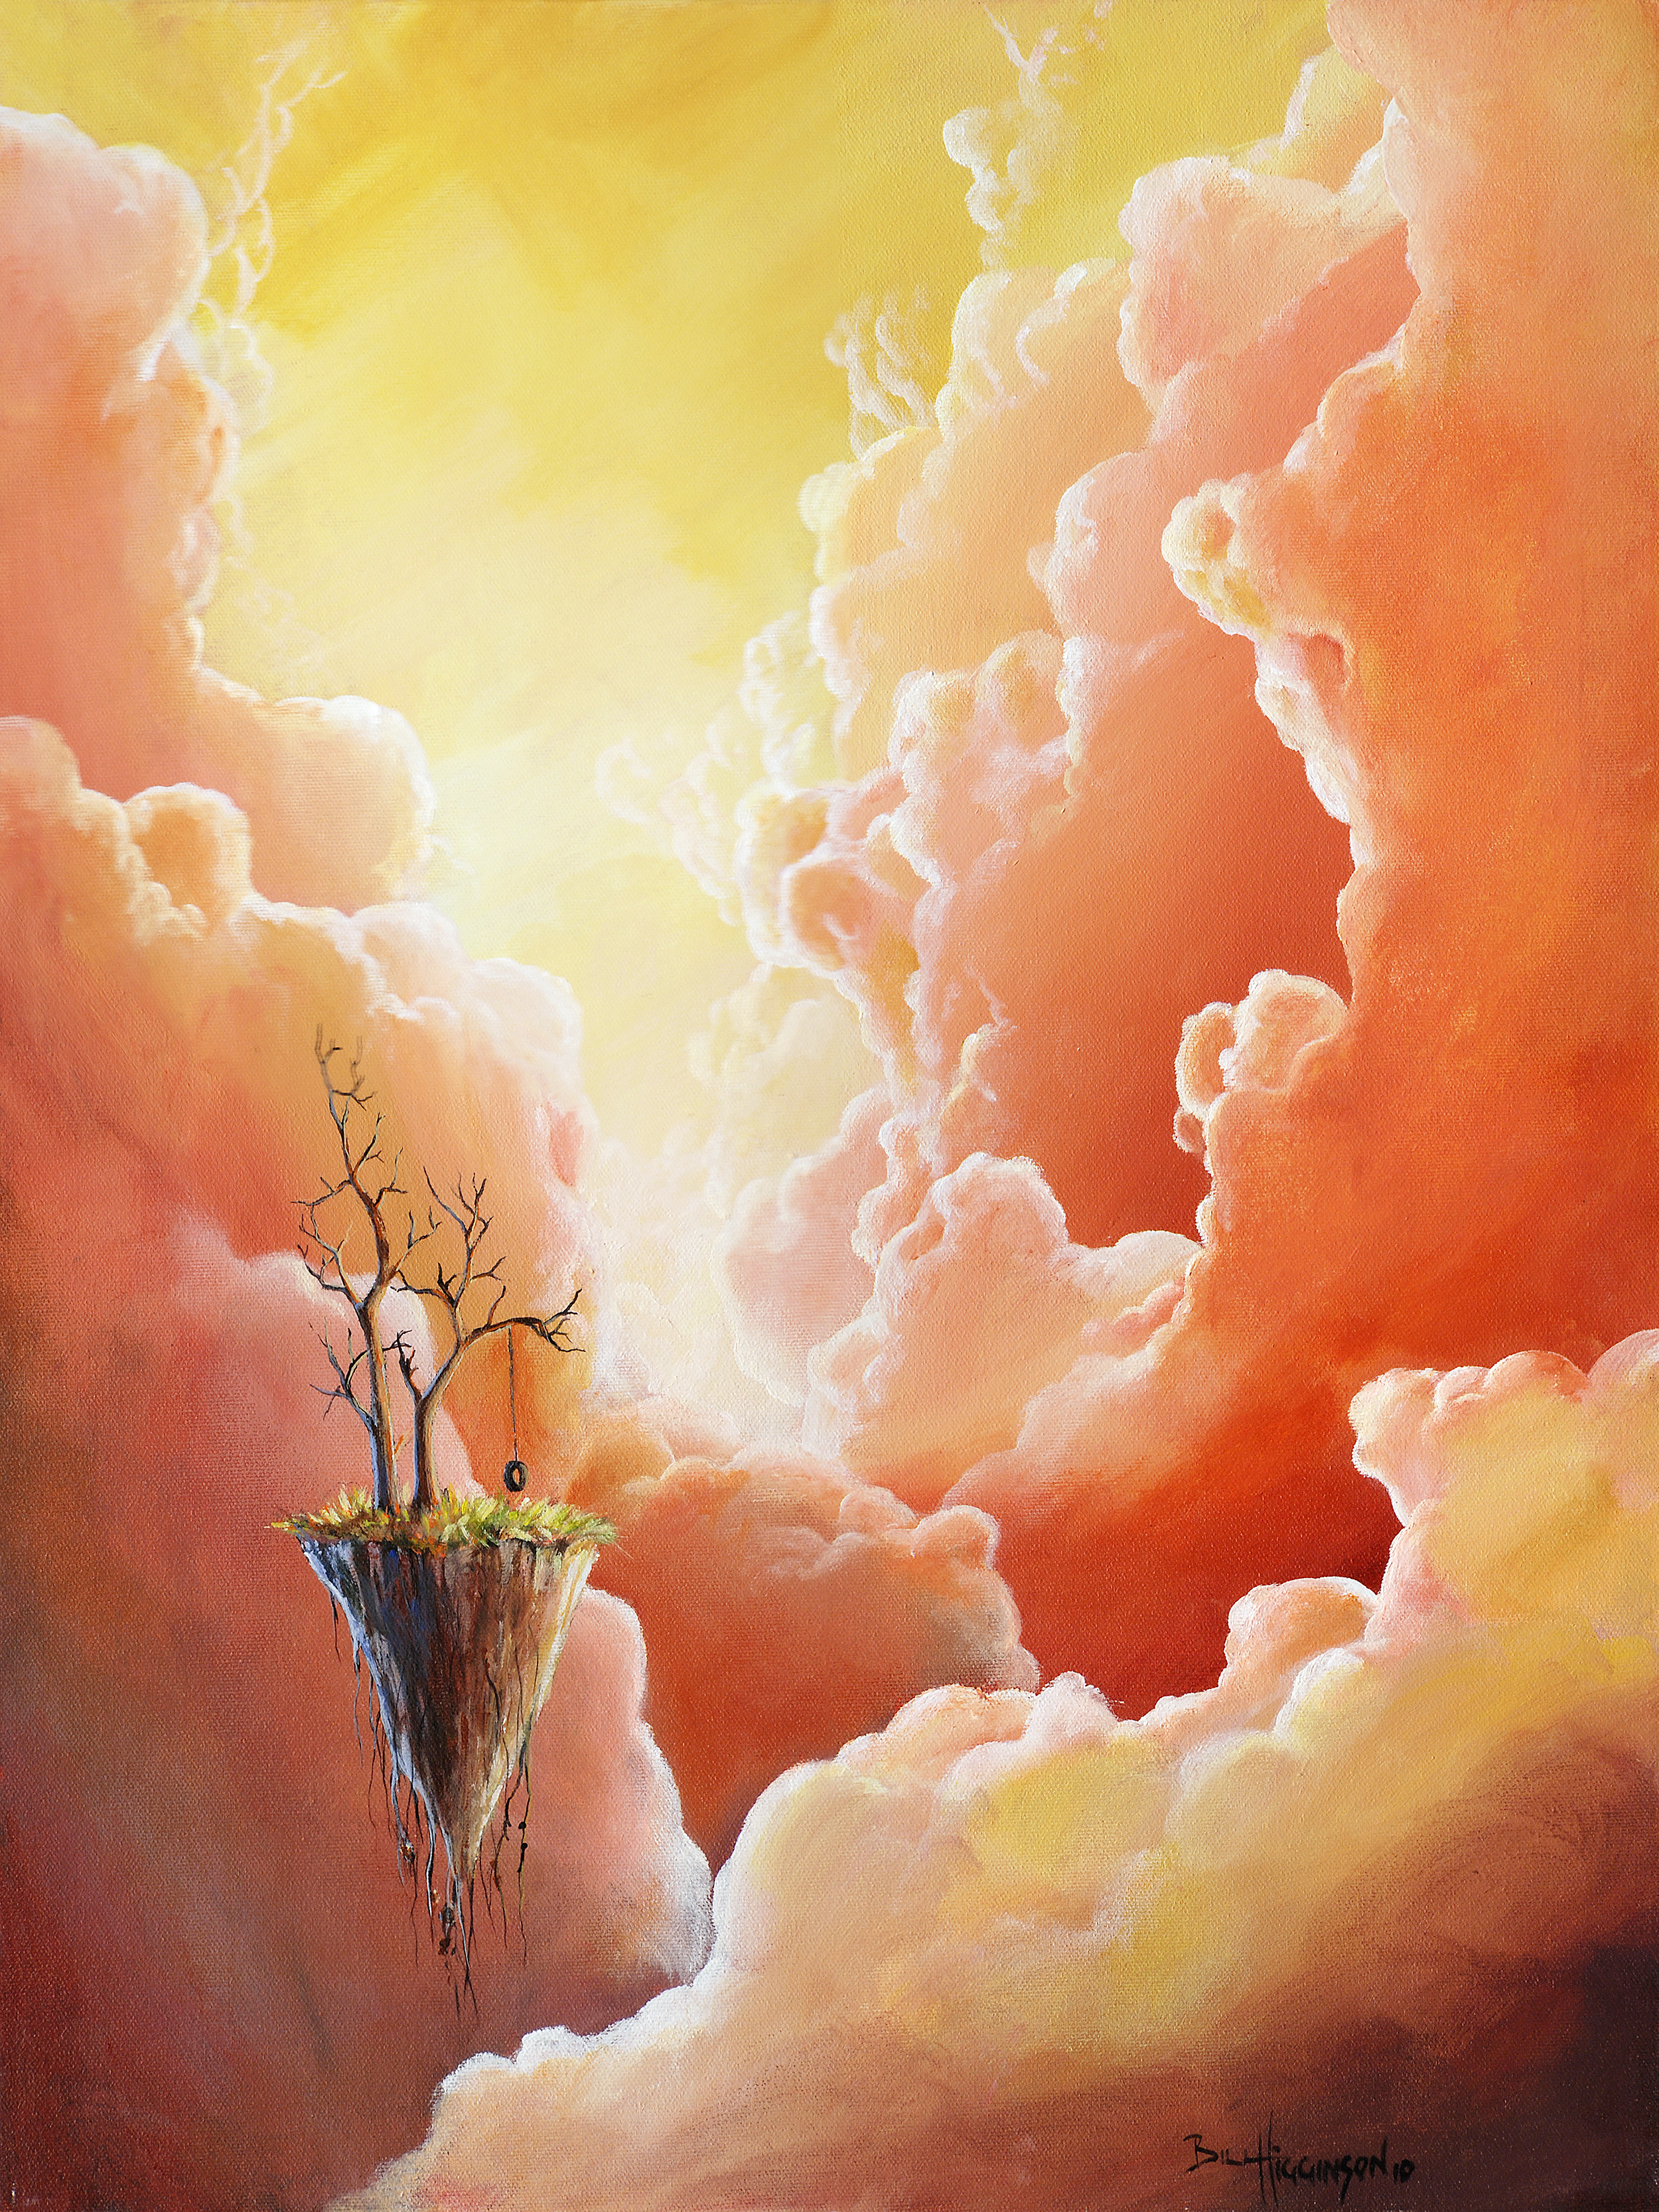 a-peaceful-place-bill-higginson-artist-acrylic-canvas-abstract-painting